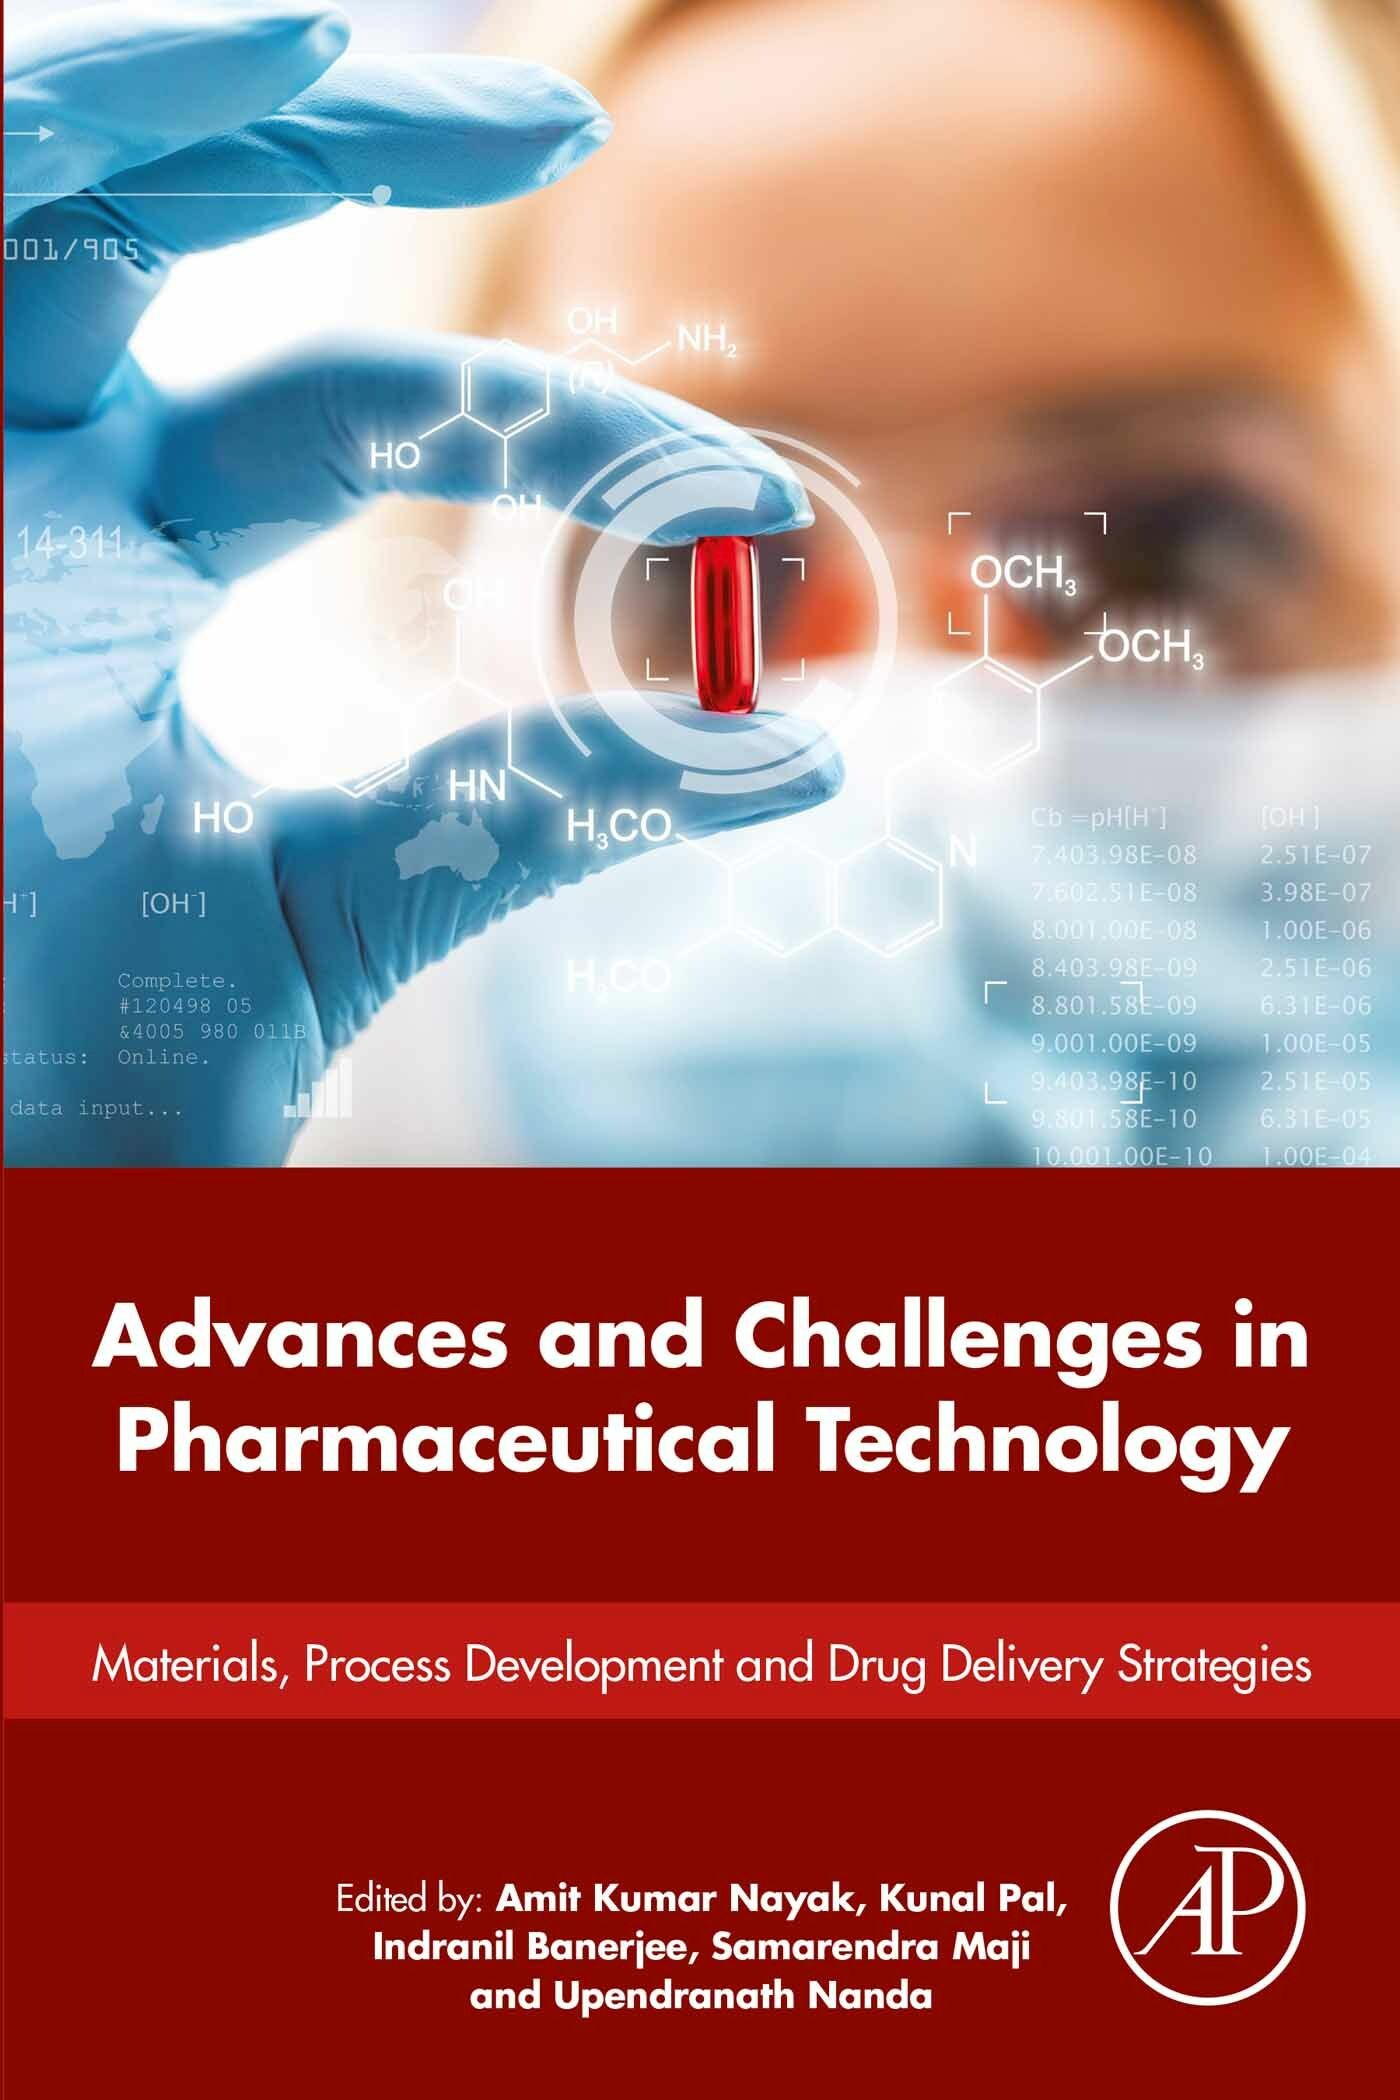 Advances and Challenges in Pharmaceutical Technology